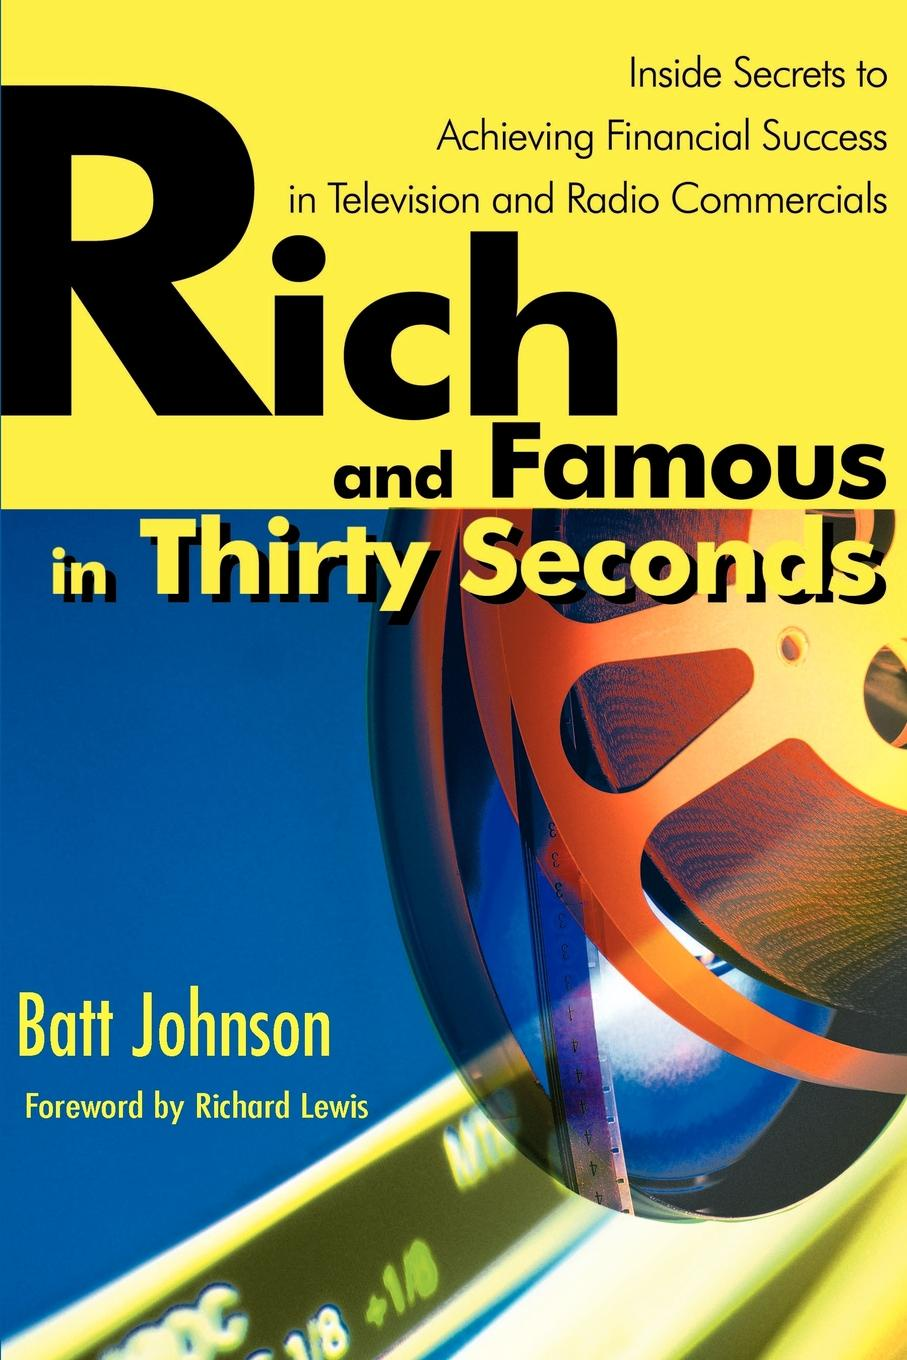 Rich and Famous in Thirty Seconds. Inside Secrets to Achieving Financial Success in Television and Radio Commercials. Batt Johnson